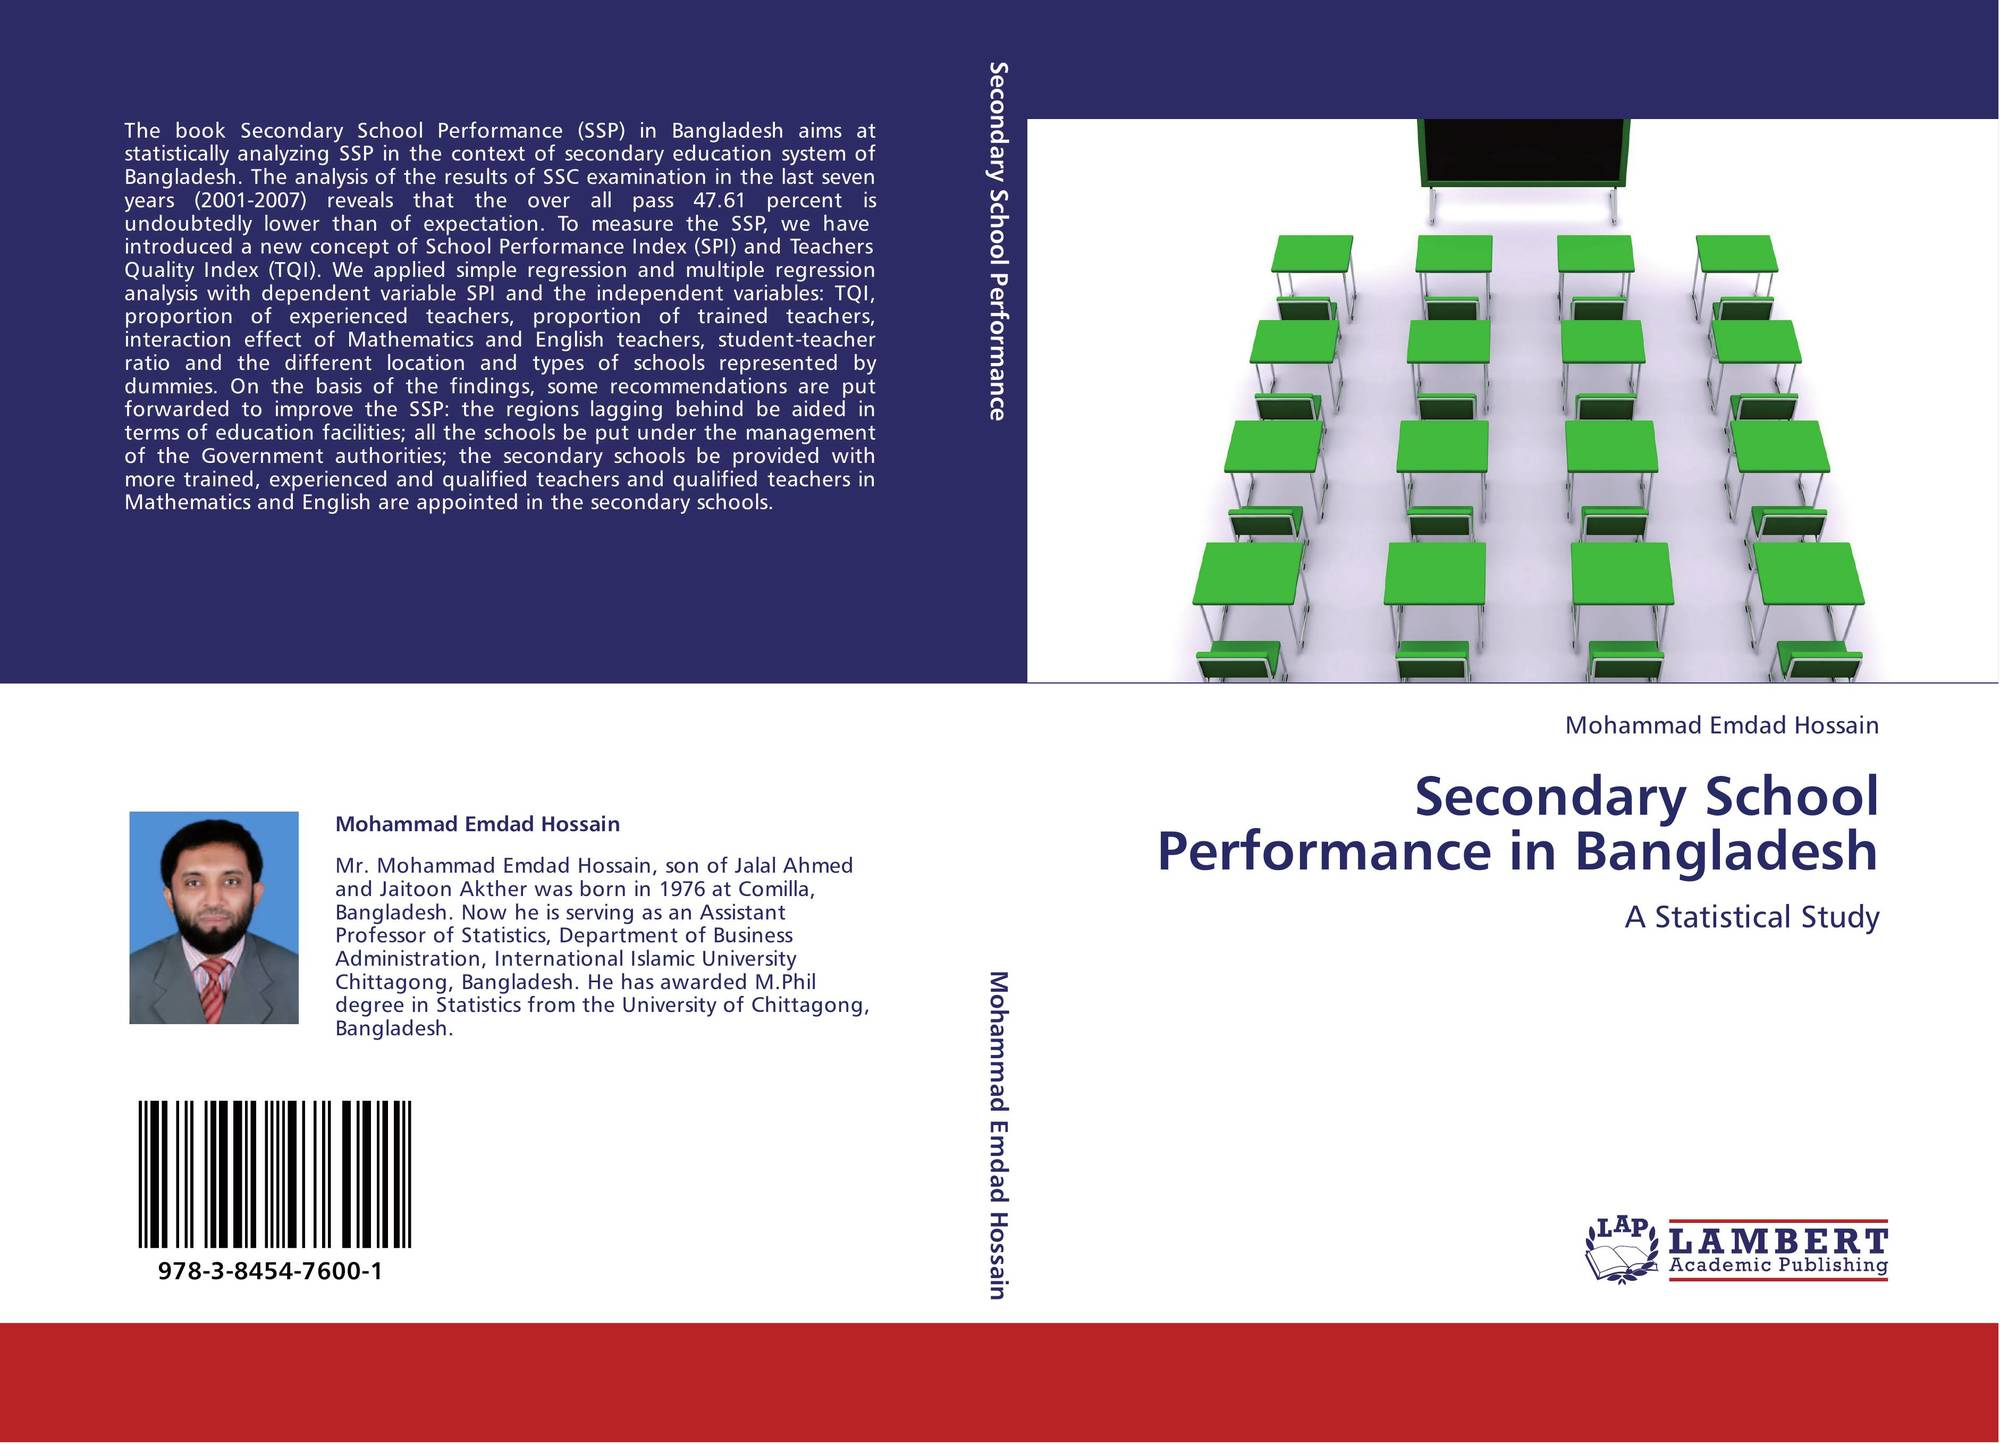 problems in management system in bangladesh Developments and challenges in bangladesh structure of the financial system in bangladesh and regulatory management monet market related issues are analyzed in.